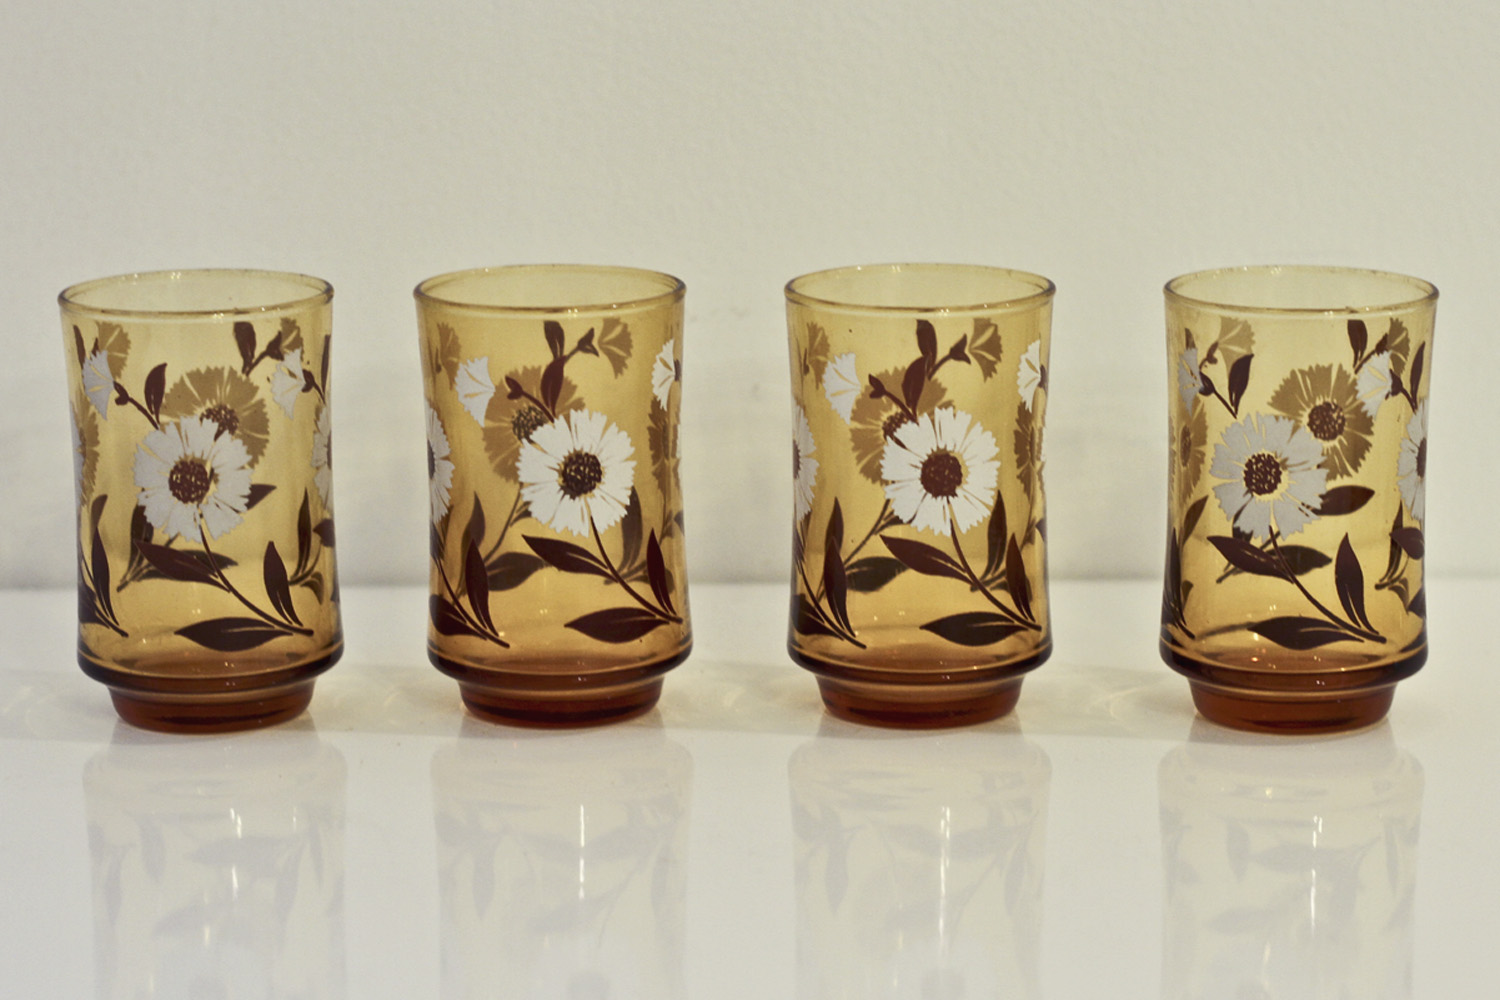 Thrift Store Finds: Vintage Glassware// Thrifted